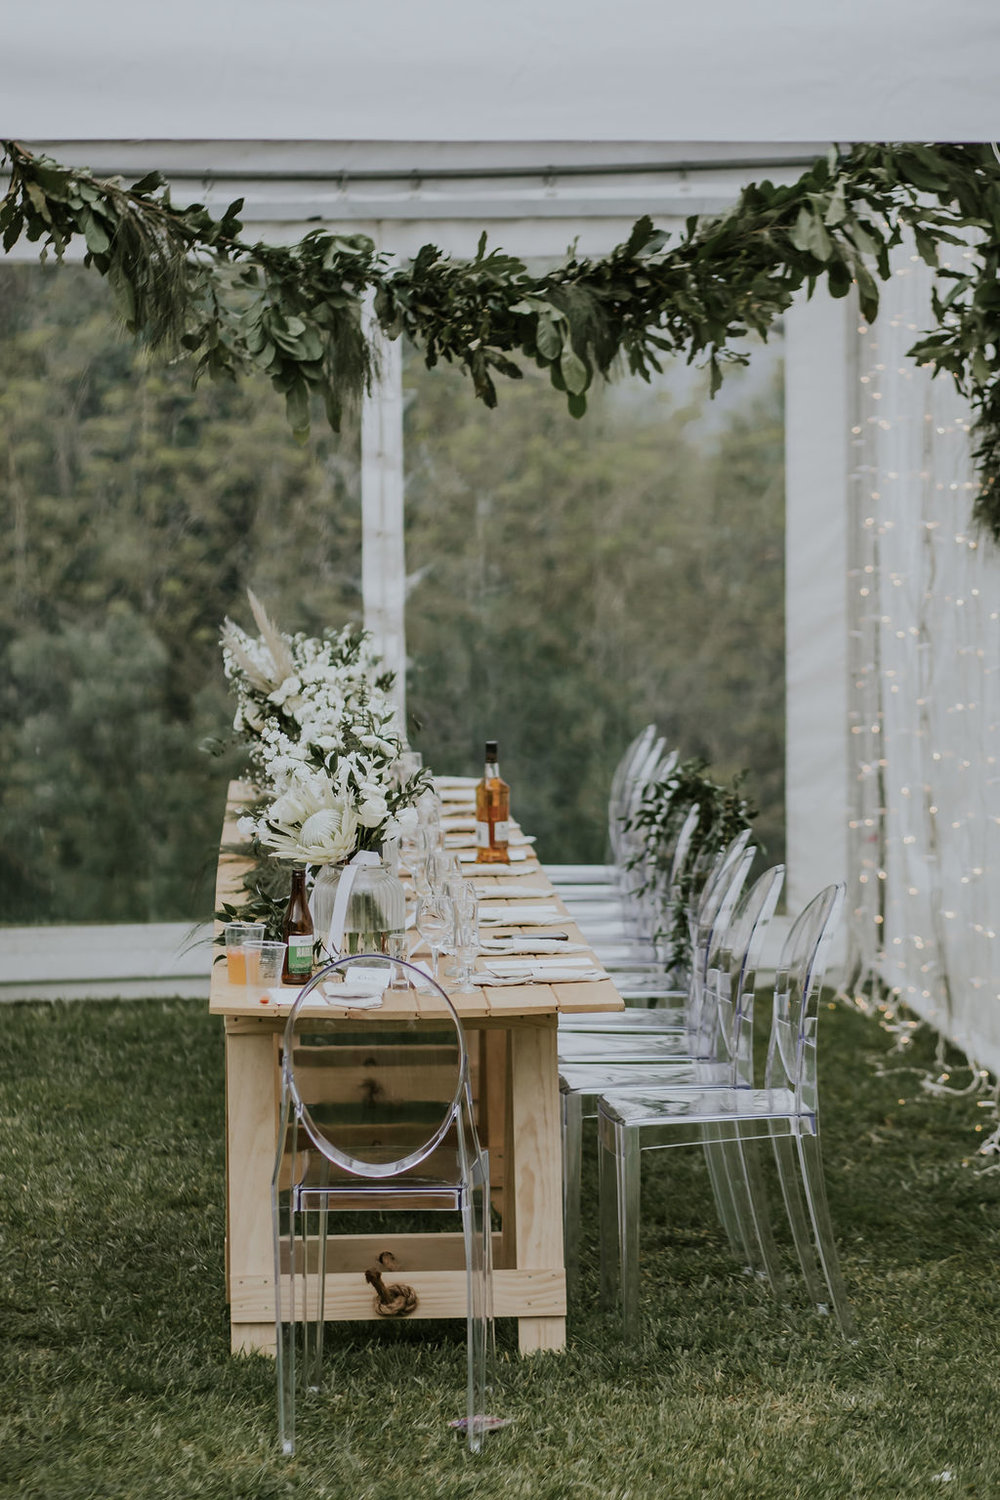 Wedding Marquee & Furniture Hire. Wooden Trestle Table and Ghost Chairs at Reception, Tauranga.